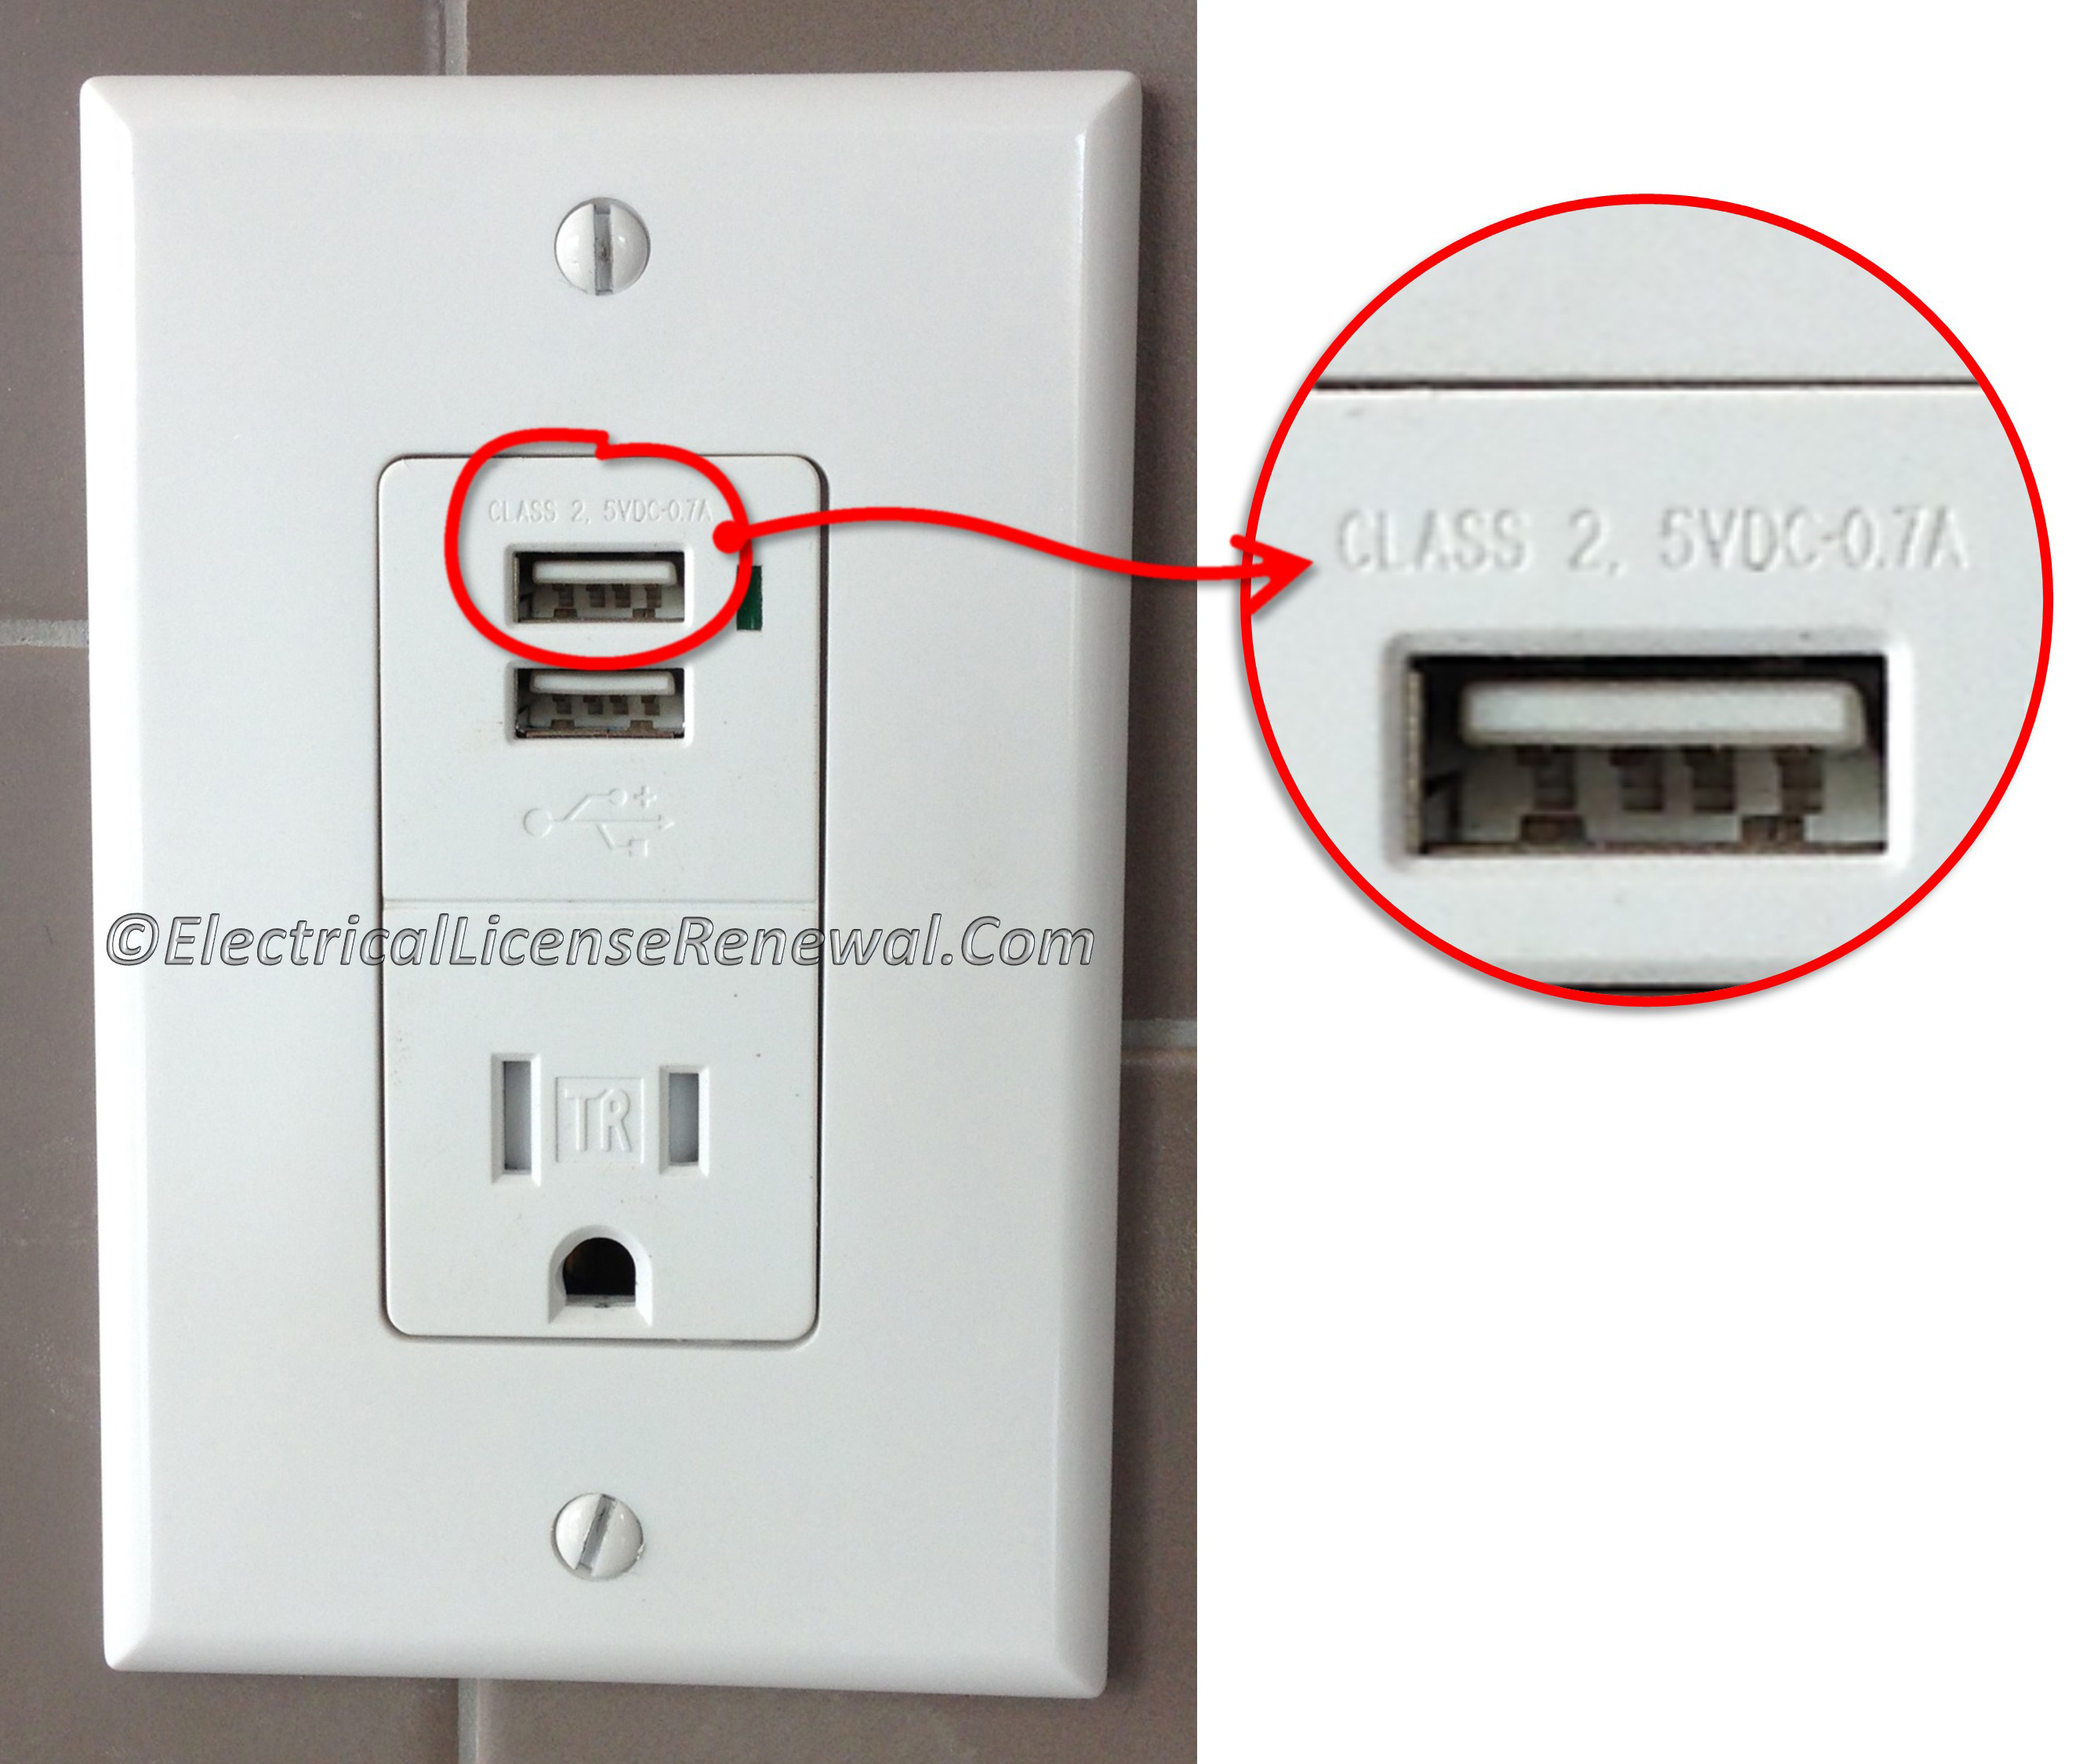 406.3(F) Receptacle with USB Charger.